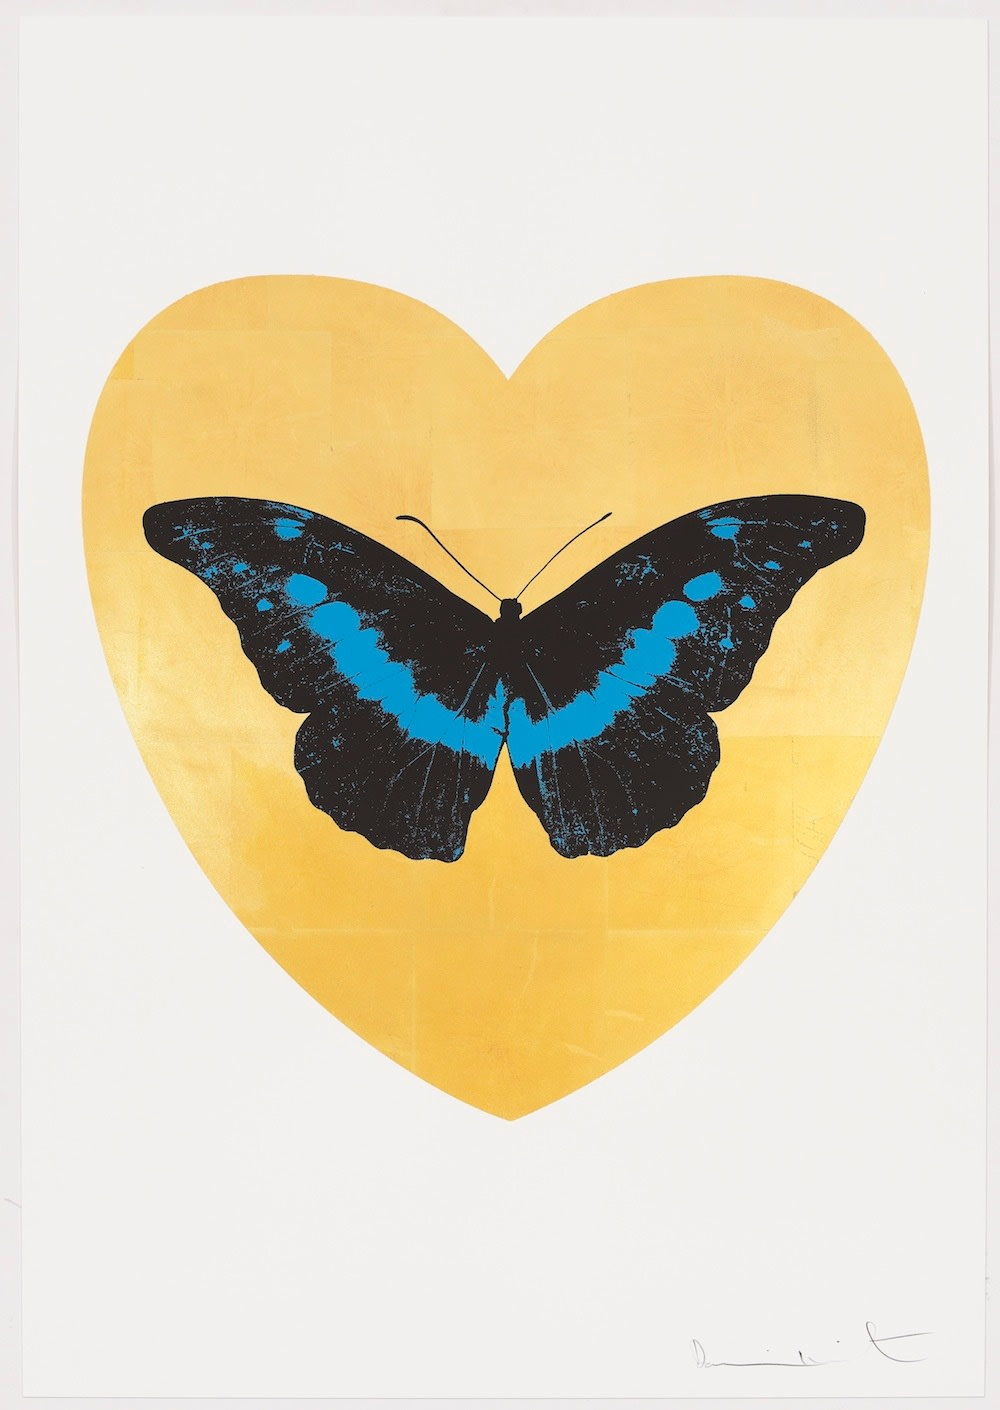 Damien Hirst I Love You - gold leaf, black, turquoise, 2015 Gold leaf and 2 colour foil block on Somerset Satin 410gsm. OC10330 100 x 70 cm Edition of 14 Signed and numbered